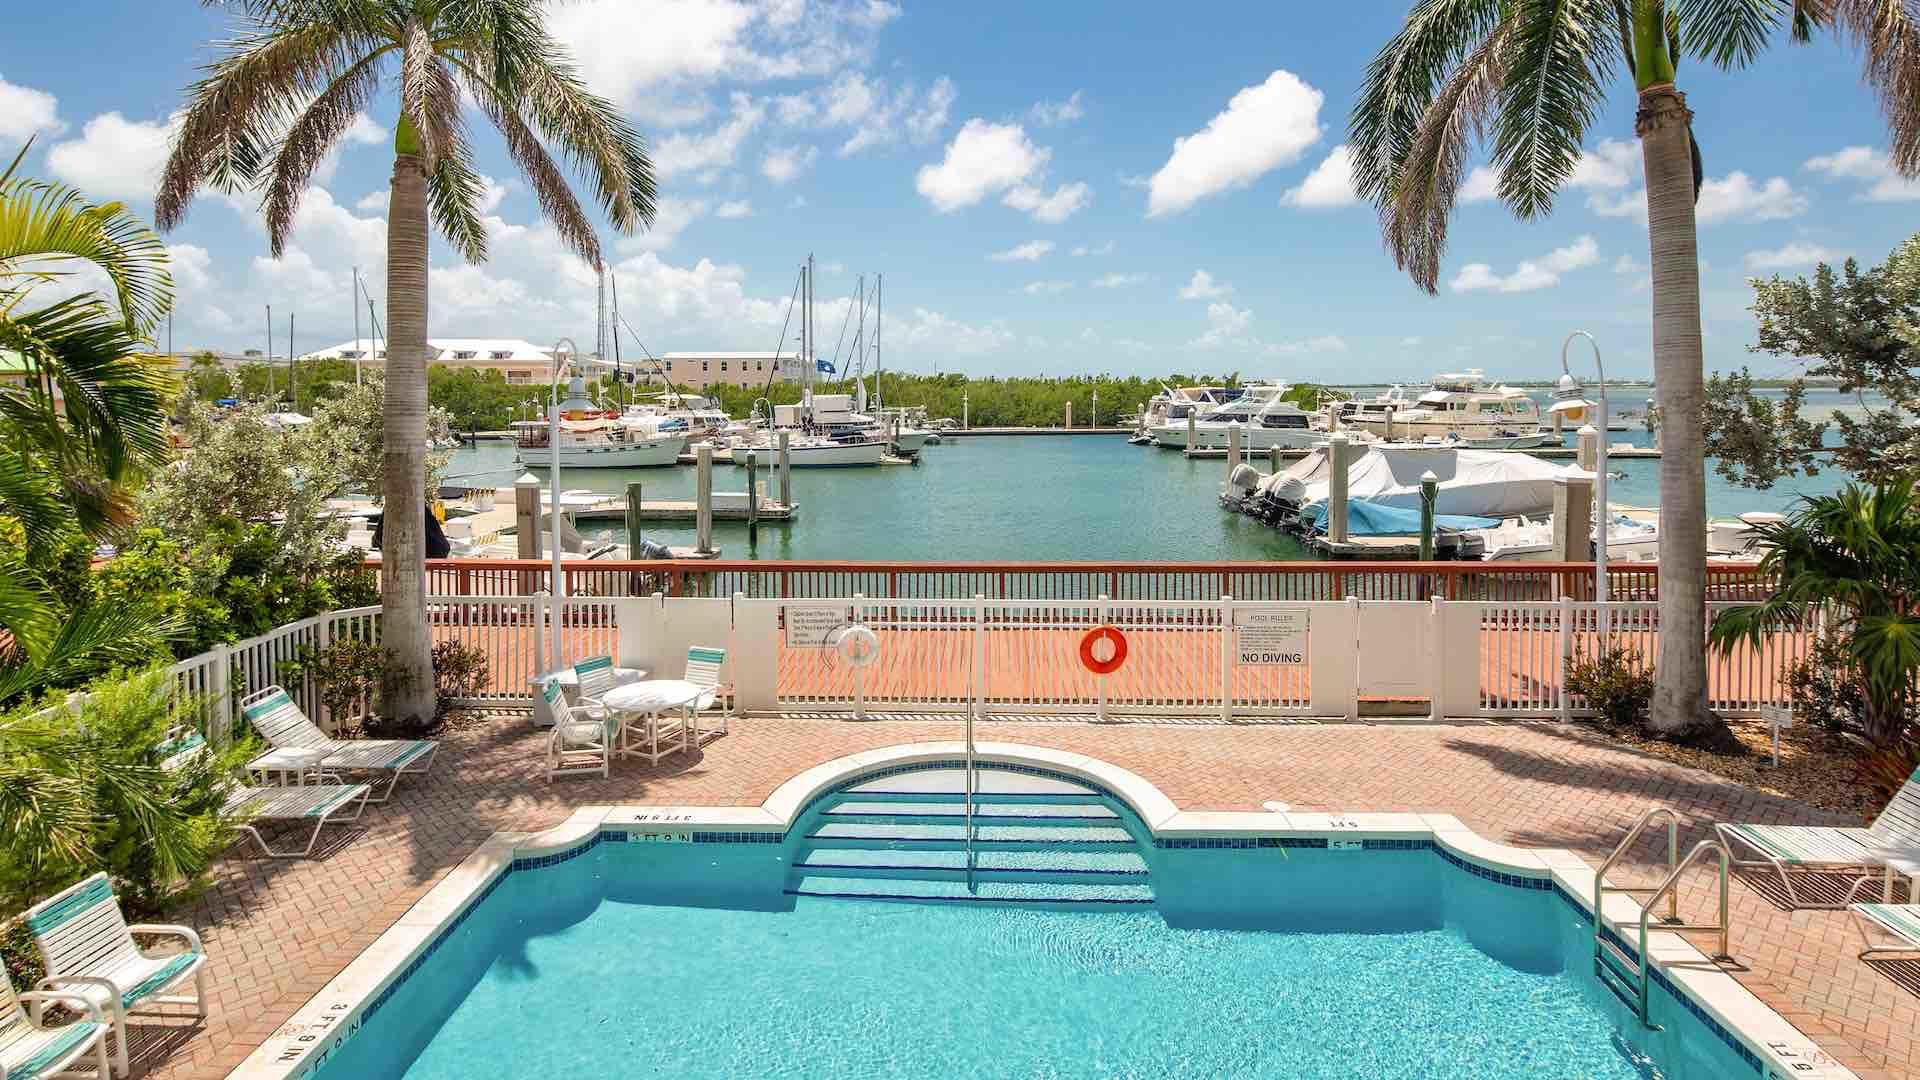 The pool faces the waterfront and is surrounded by chaise lounges...